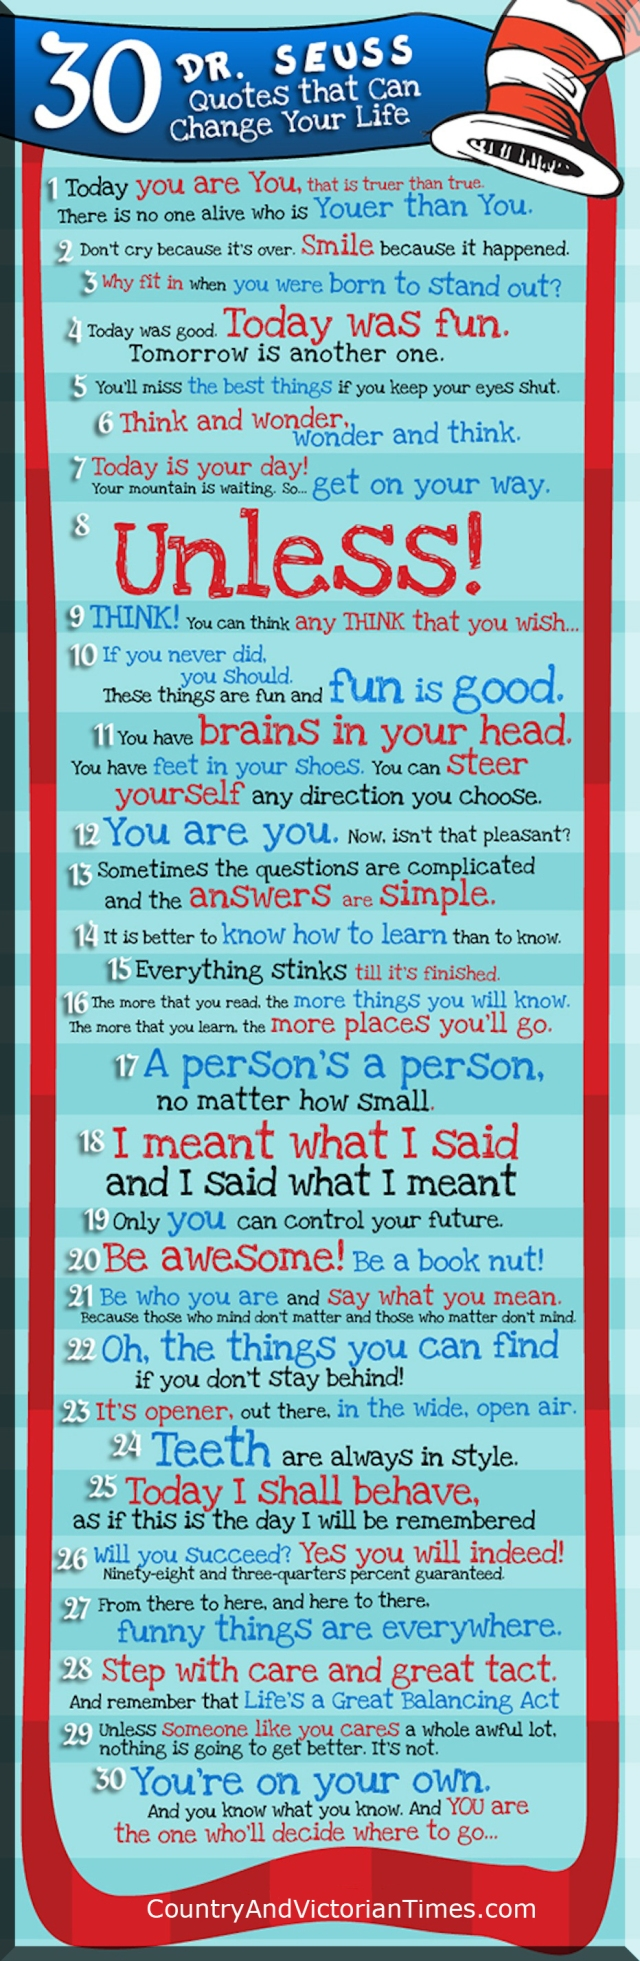 seuss_quotes